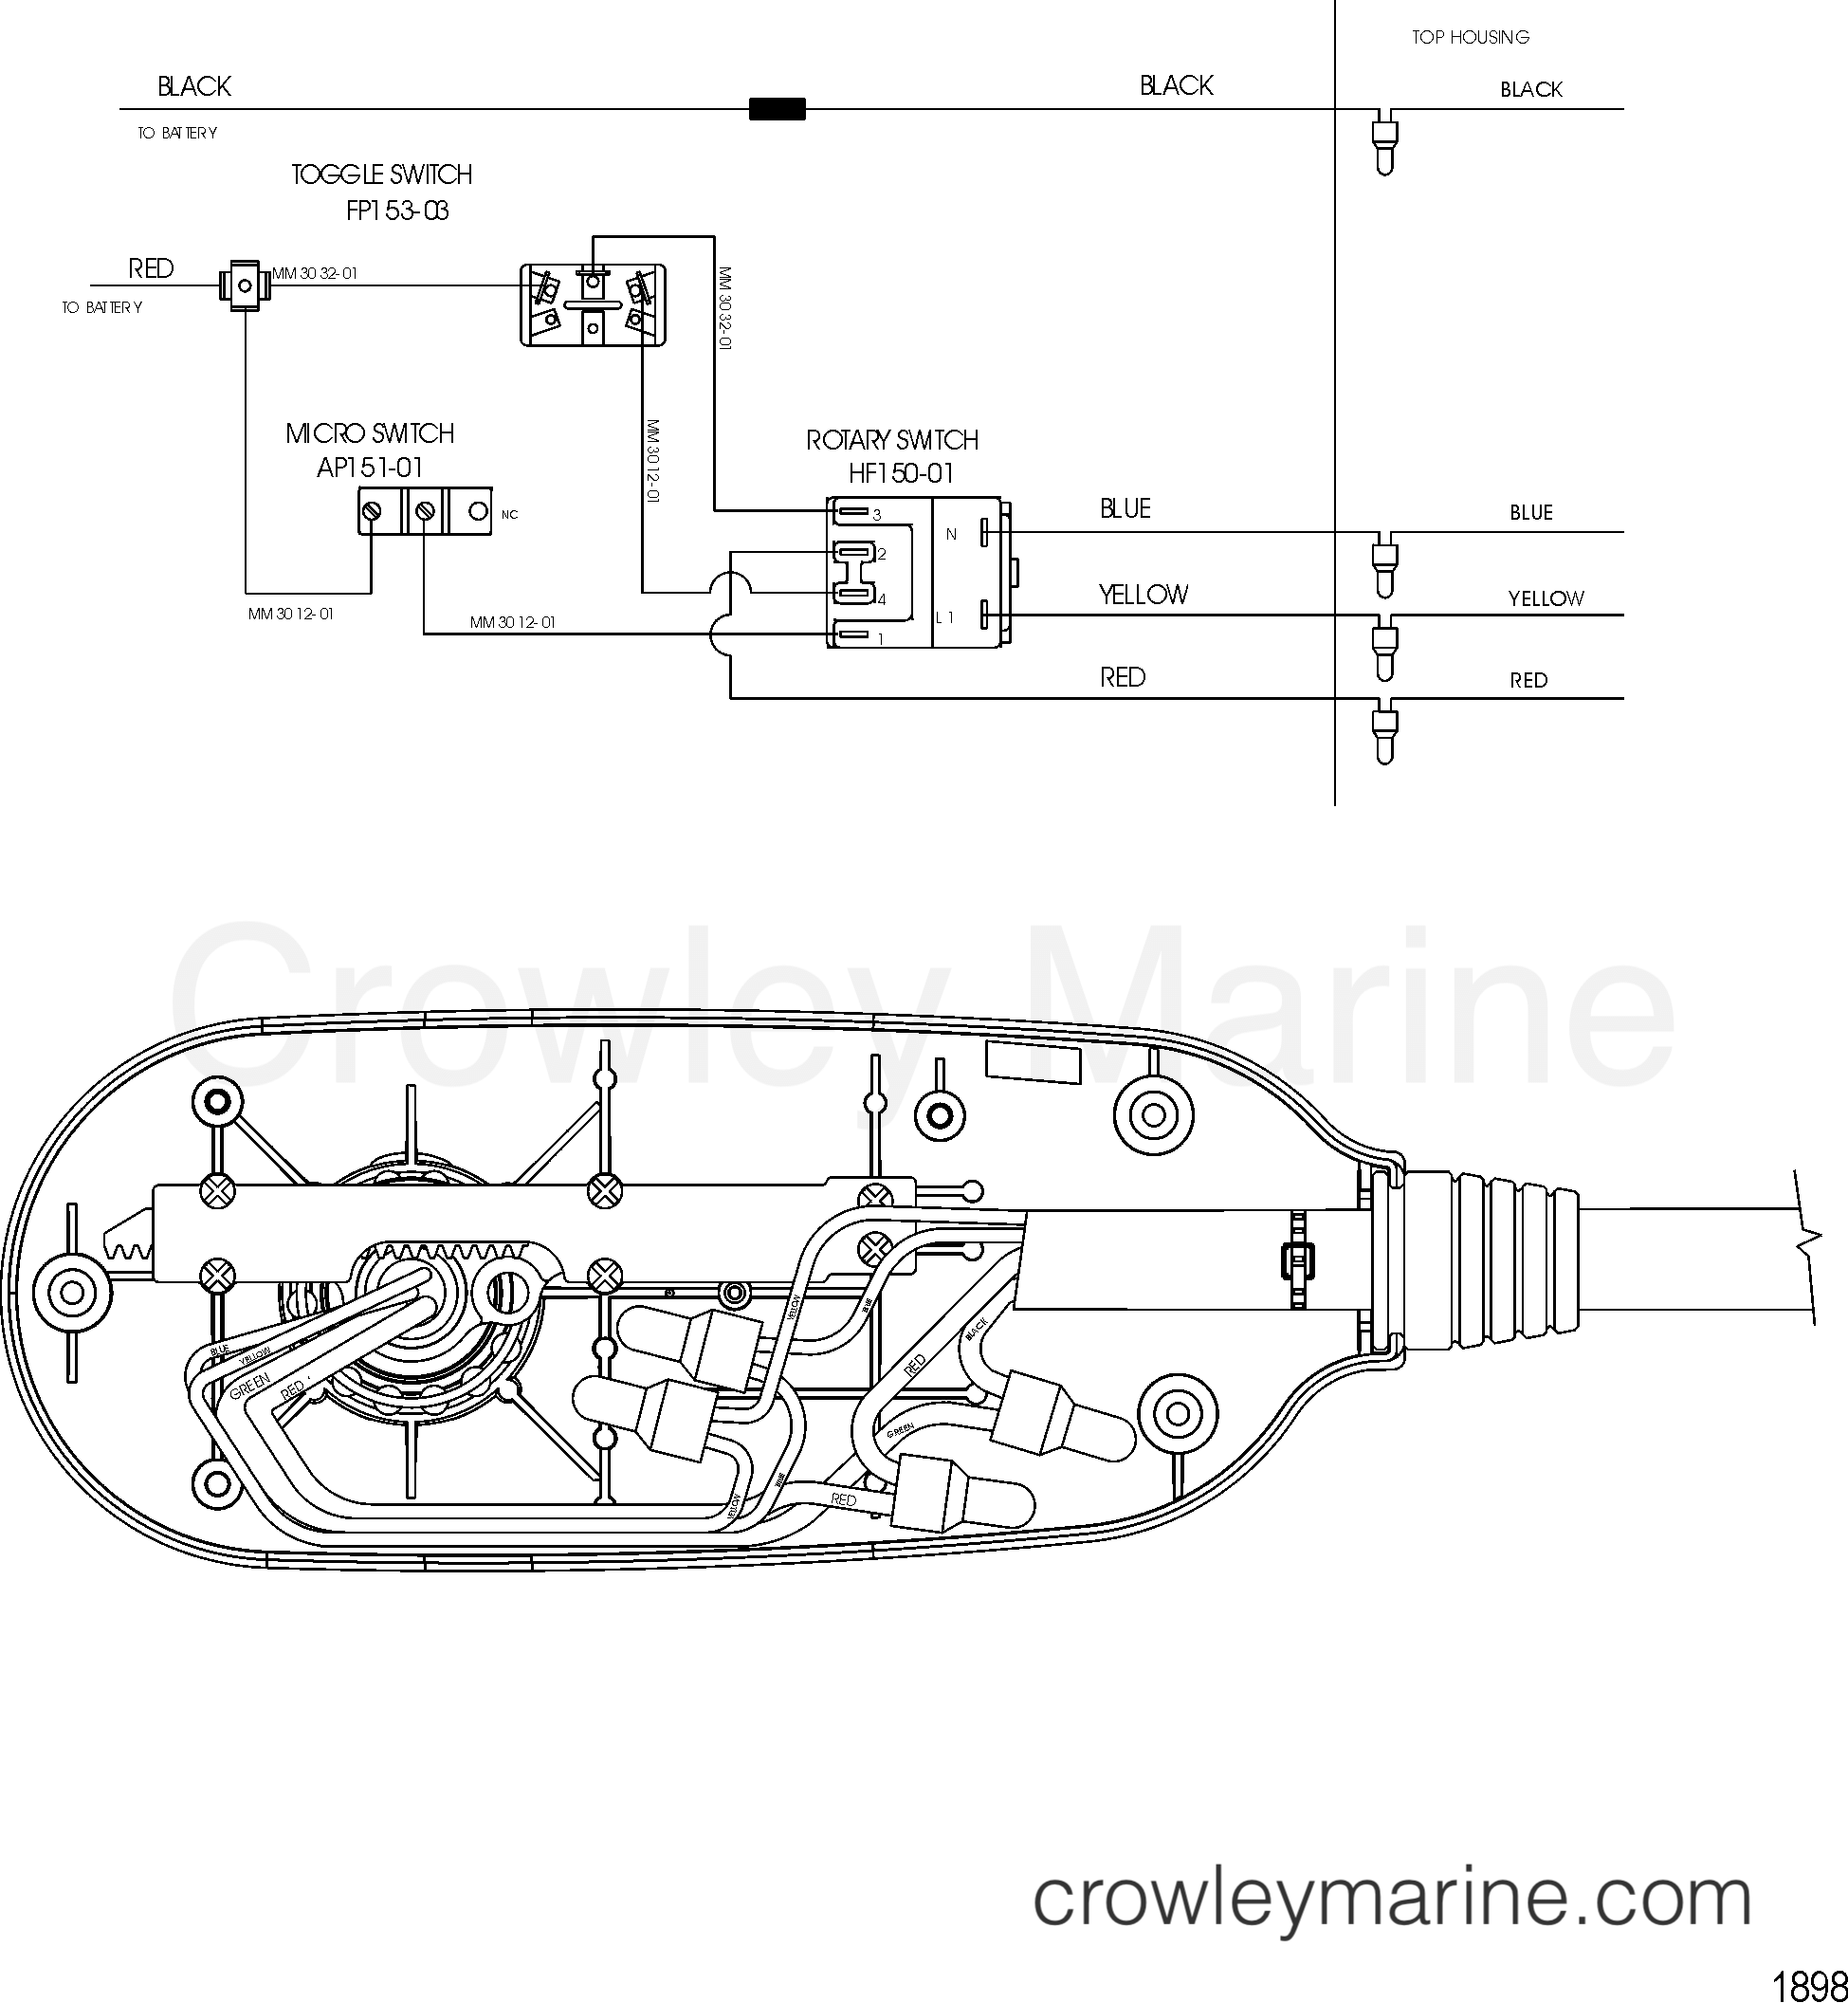 Motorguide Wiring Diagrams Diagram Pictures Minn Kota 5 Speed Switch Wire Model Pro 70 24 Volt 2002 12v Rh Crowleymarine Com Parts